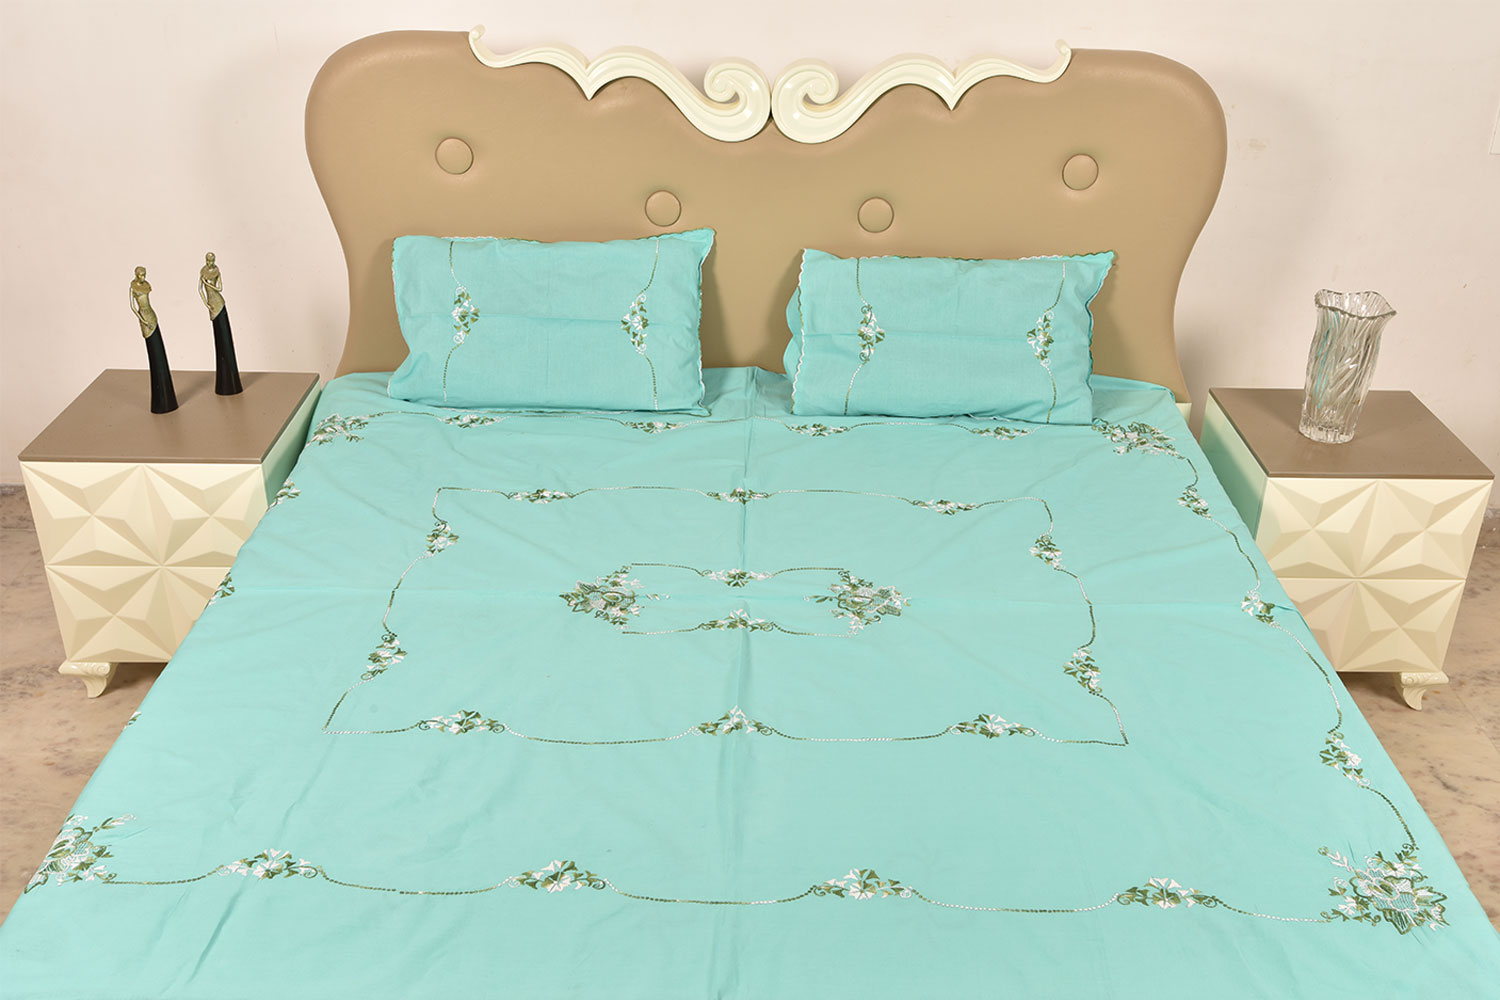 Blue Handmade Double Bed Sheet Linen with Floral Design Beautiful Decorative Stylish